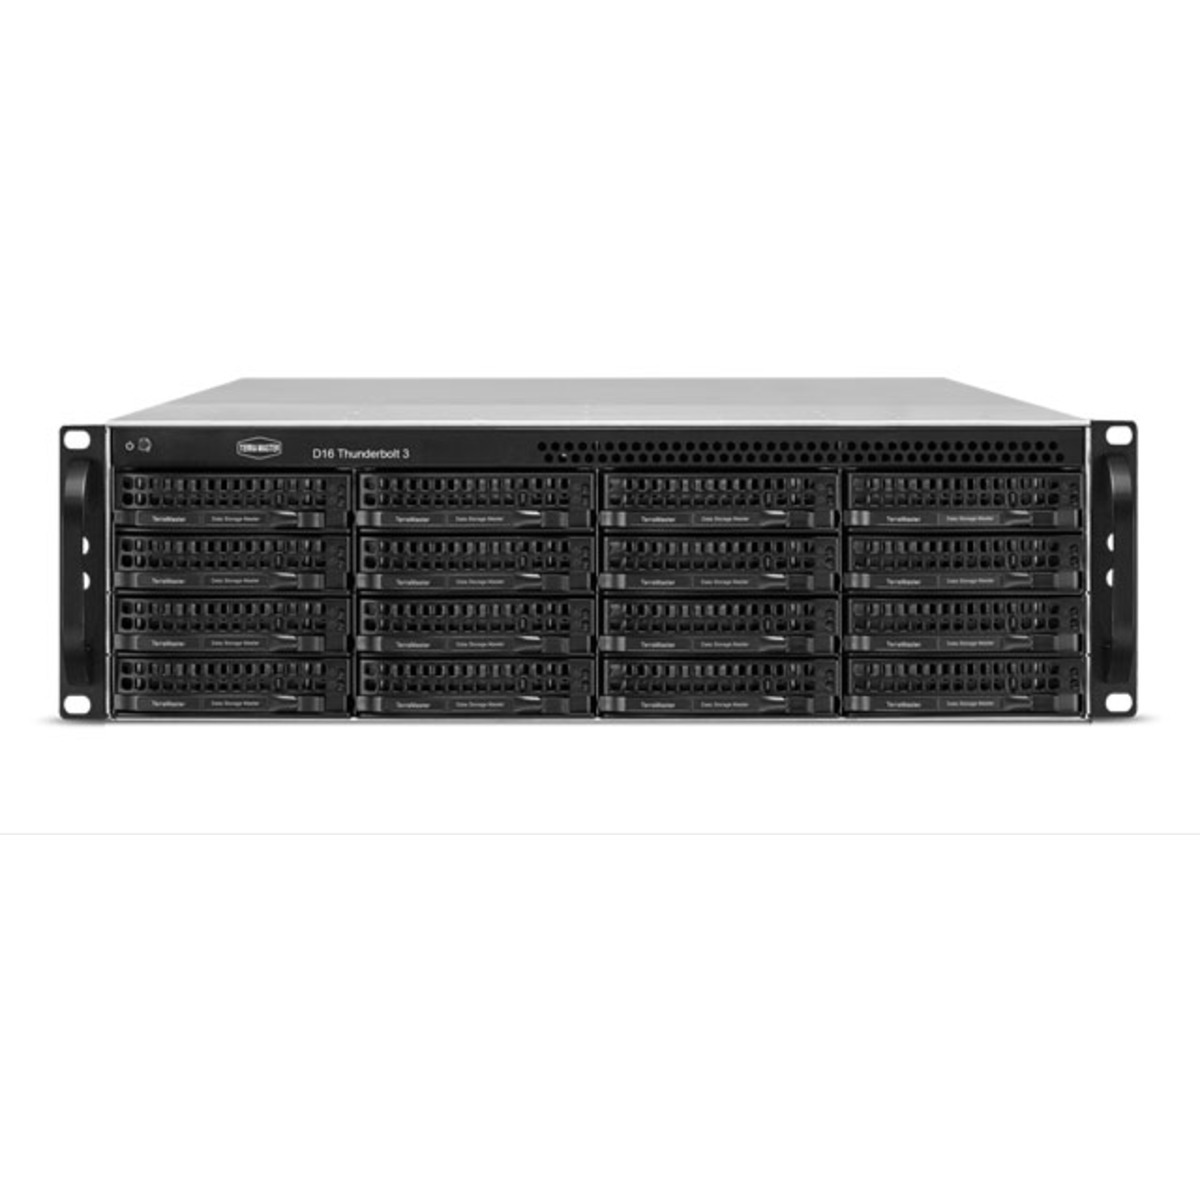 buy $5276 TerraMaster D16 Thunderbolt 3 48tb RackMount DAS - Direct Attached Storage Device 16x3000gb Western Digital Red Plus WD30EFRX 3.5 5400rpm SATA 6Gb/s HDD NAS Class Drives Installed - Burn-In Tested - nas headquarters buy network attached storage server device das new raid-5 free shipping usa holiday new year clearance sale D16 Thunderbolt 3